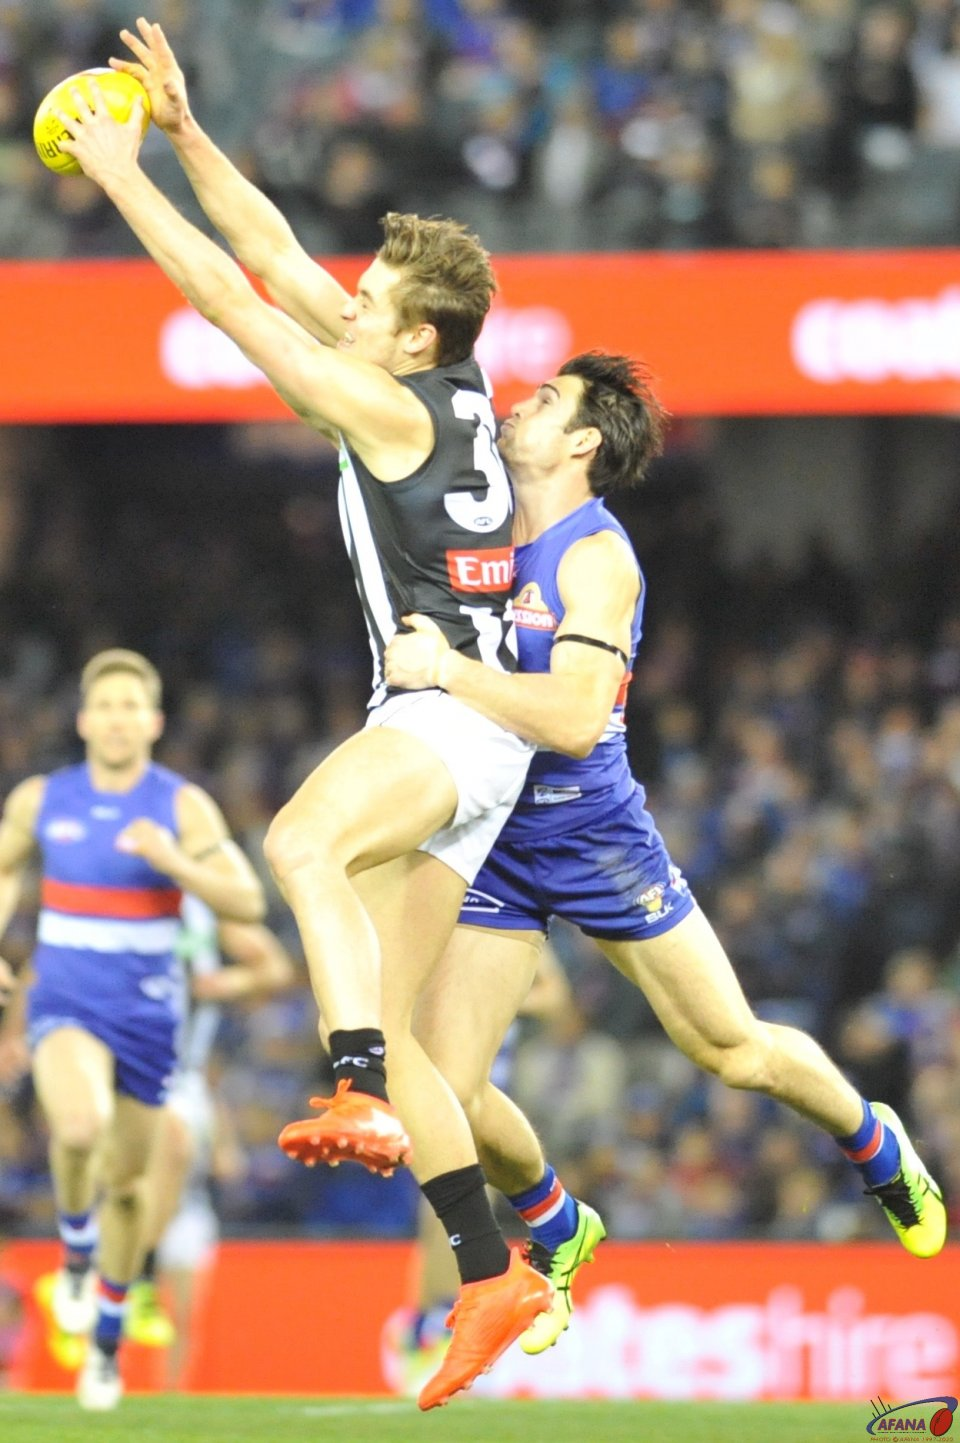 Easton Wood is just unable to spoil the Darcy Moore mark